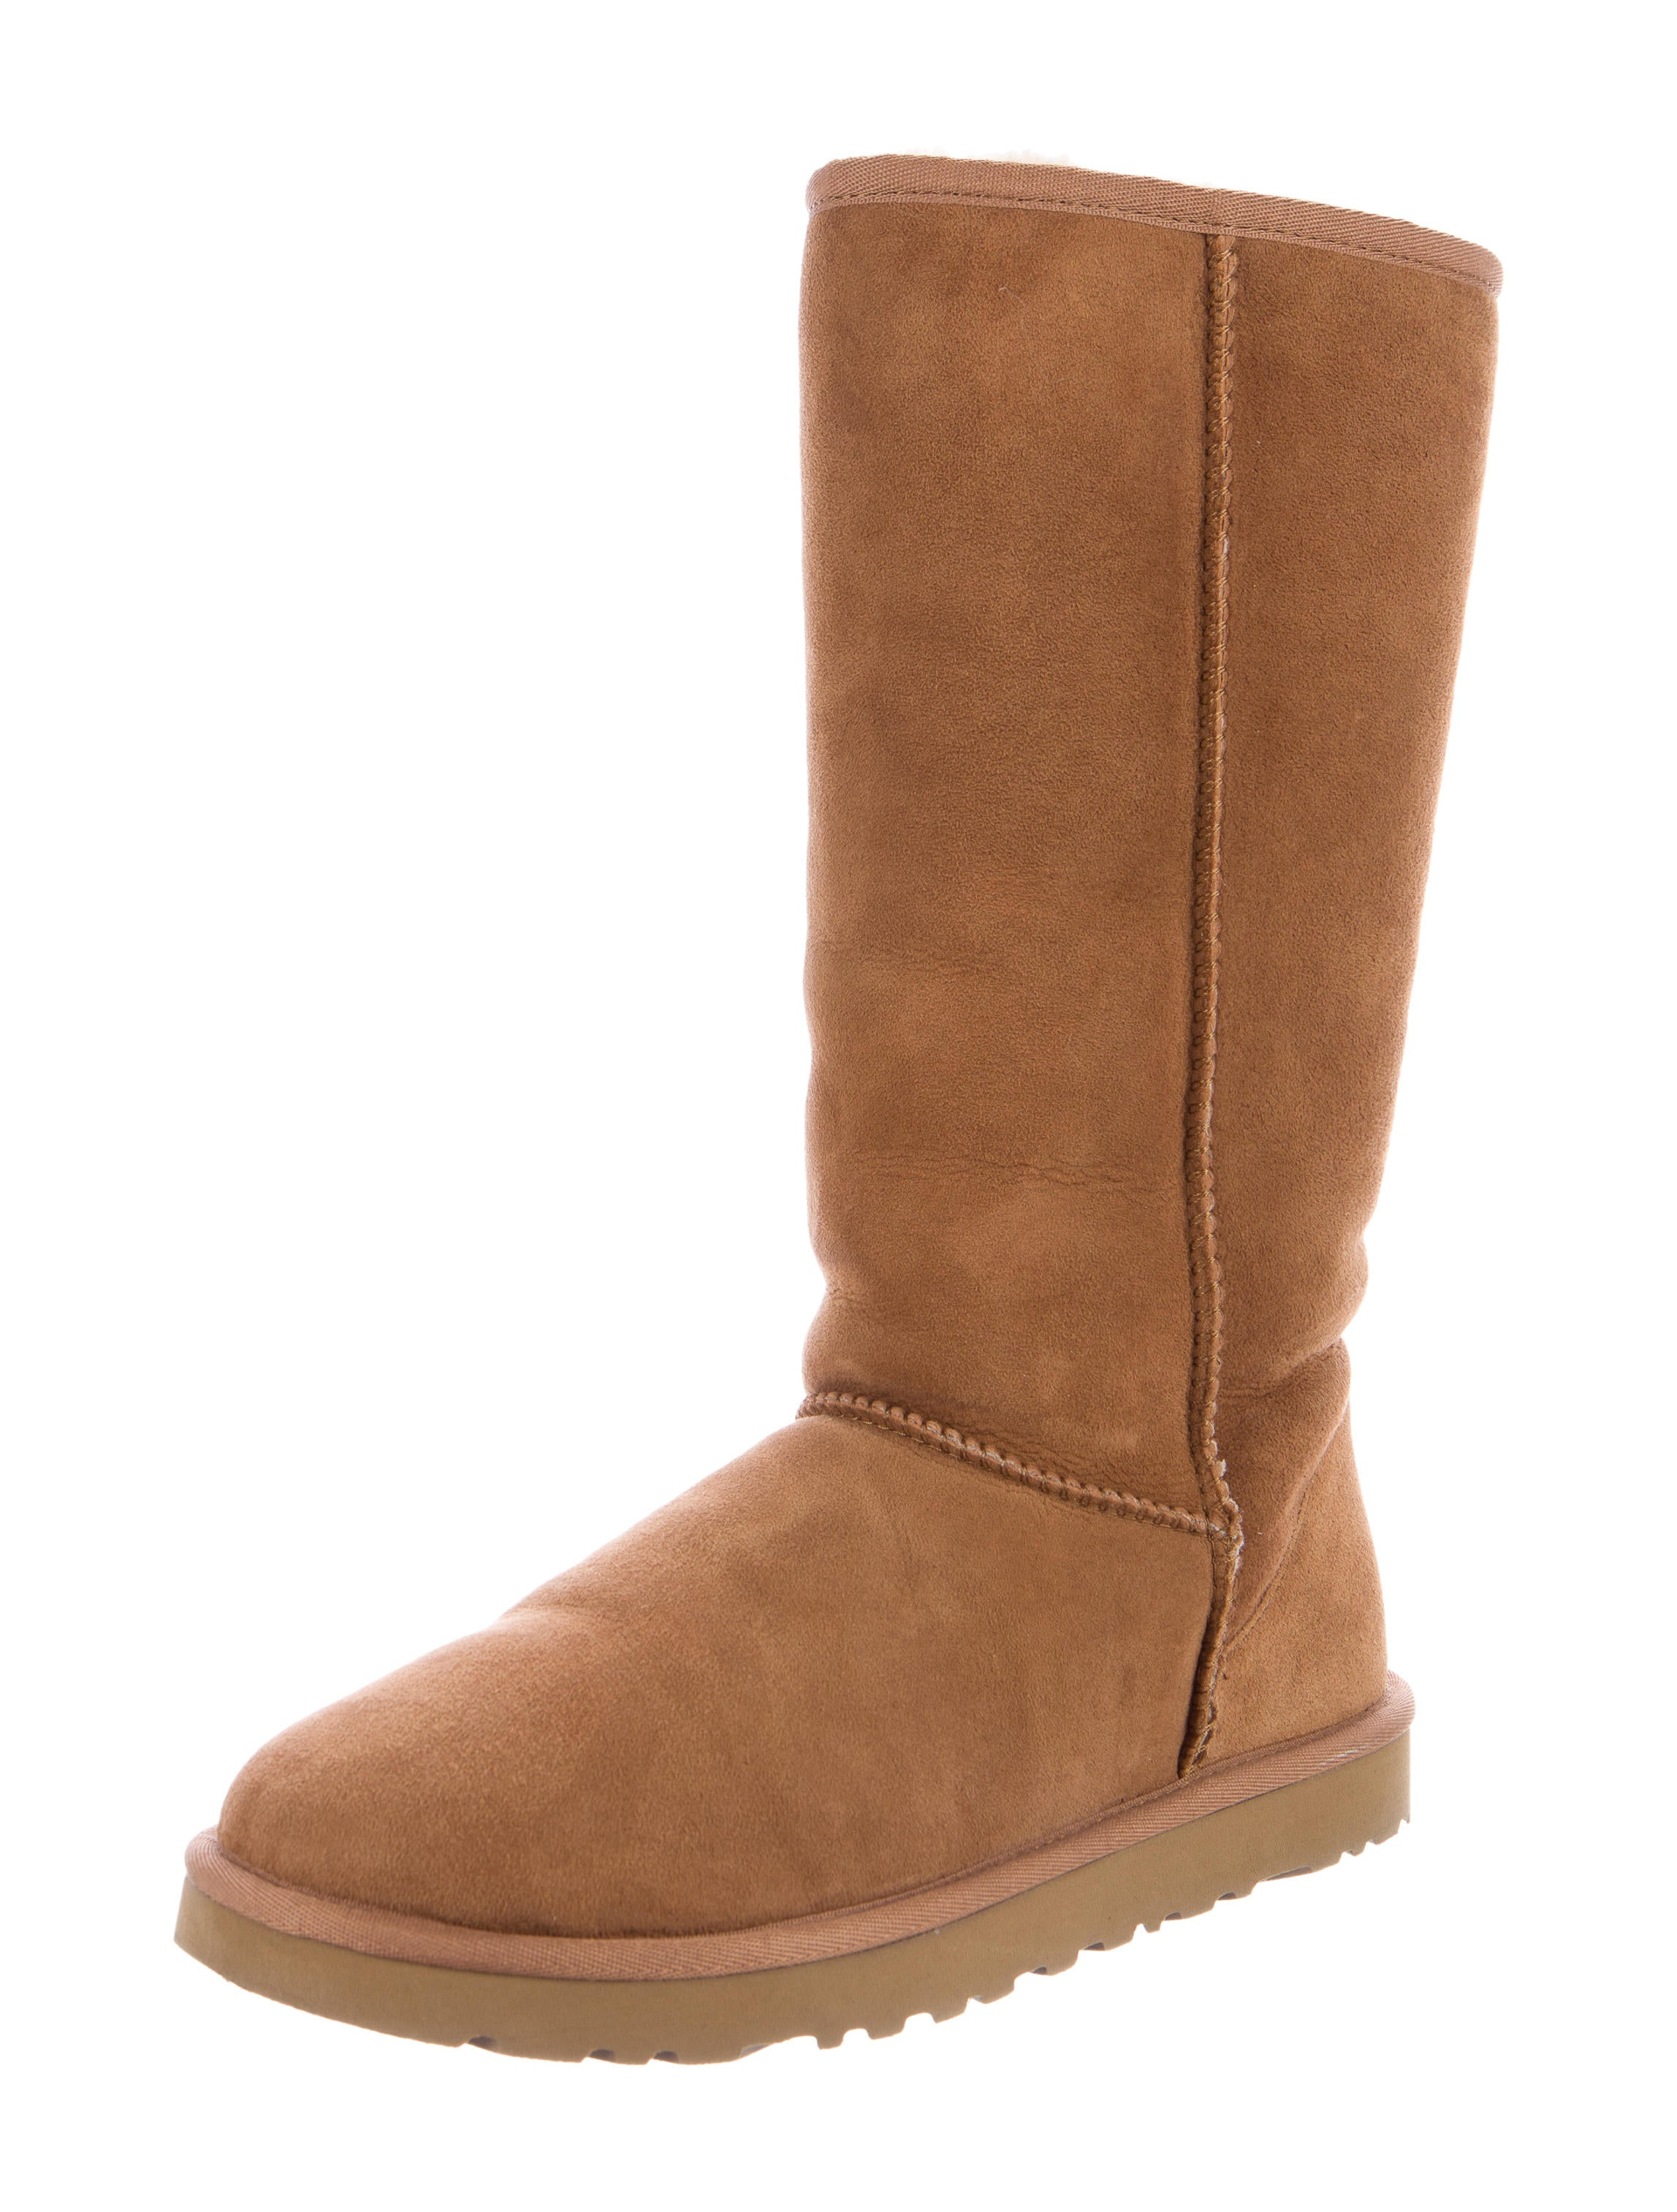 Ugg Australia Suede Leather Tall Boots Shoes